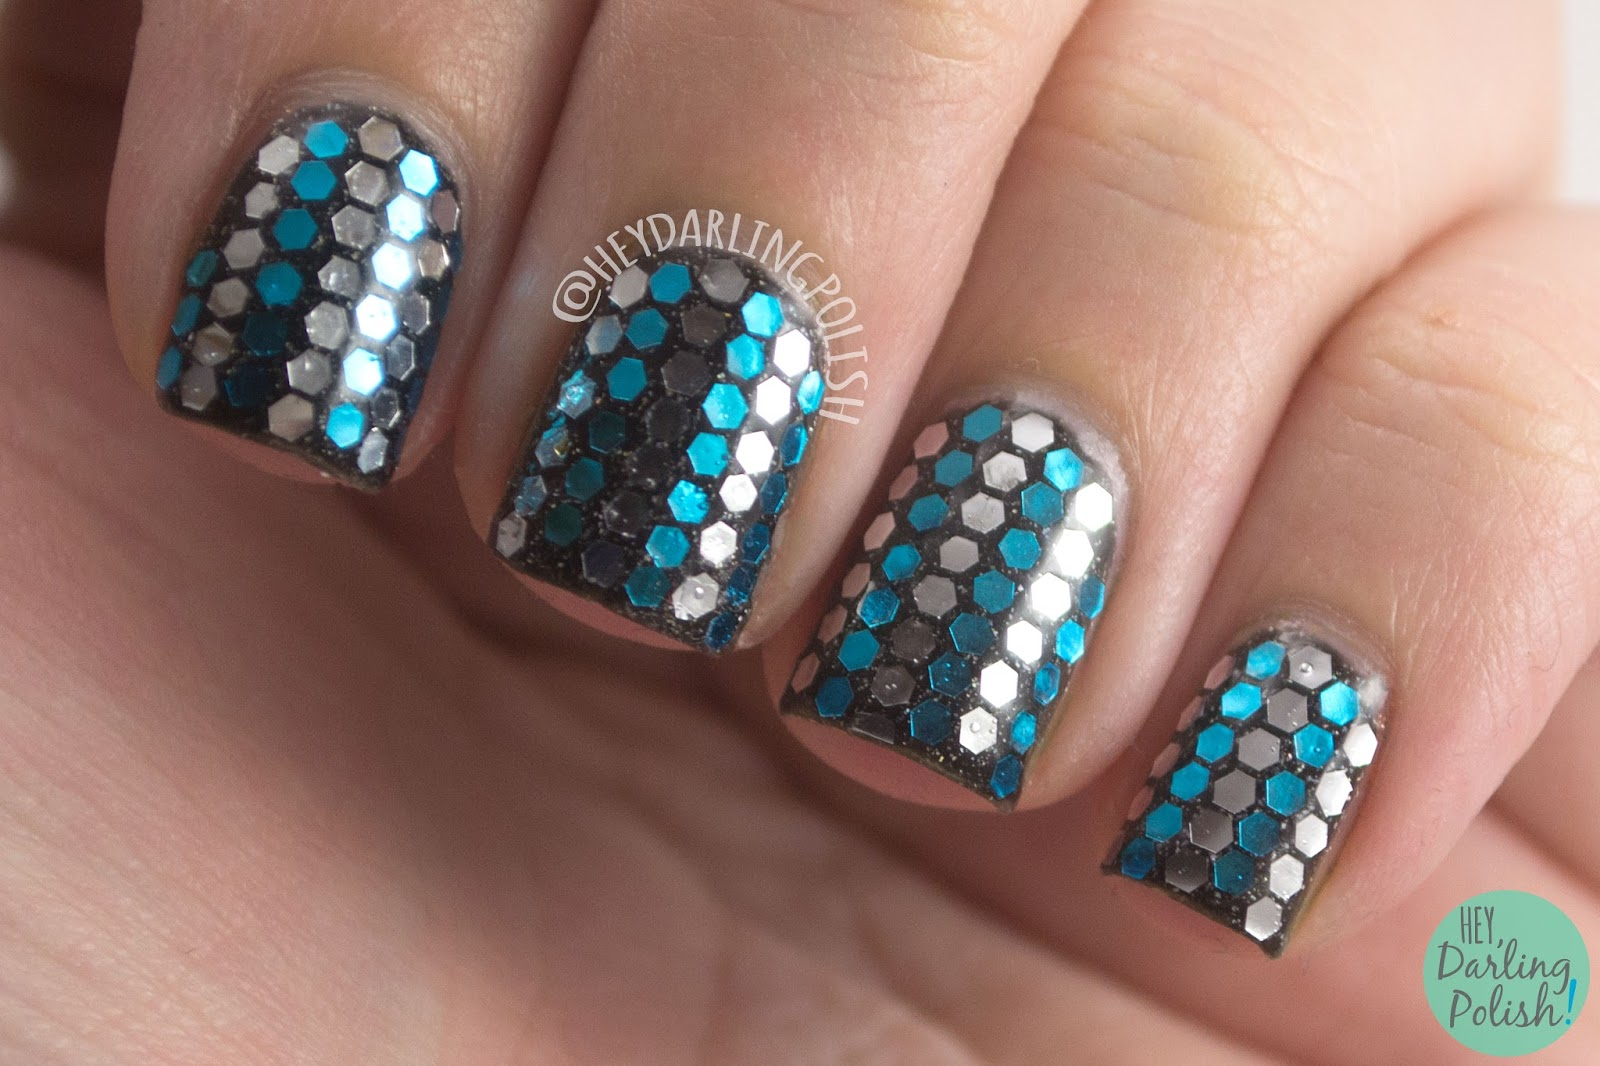 nails, nail art, nail polish, glitter, glitter placement, hey darling polish, blue, silver, black, birthday nails,